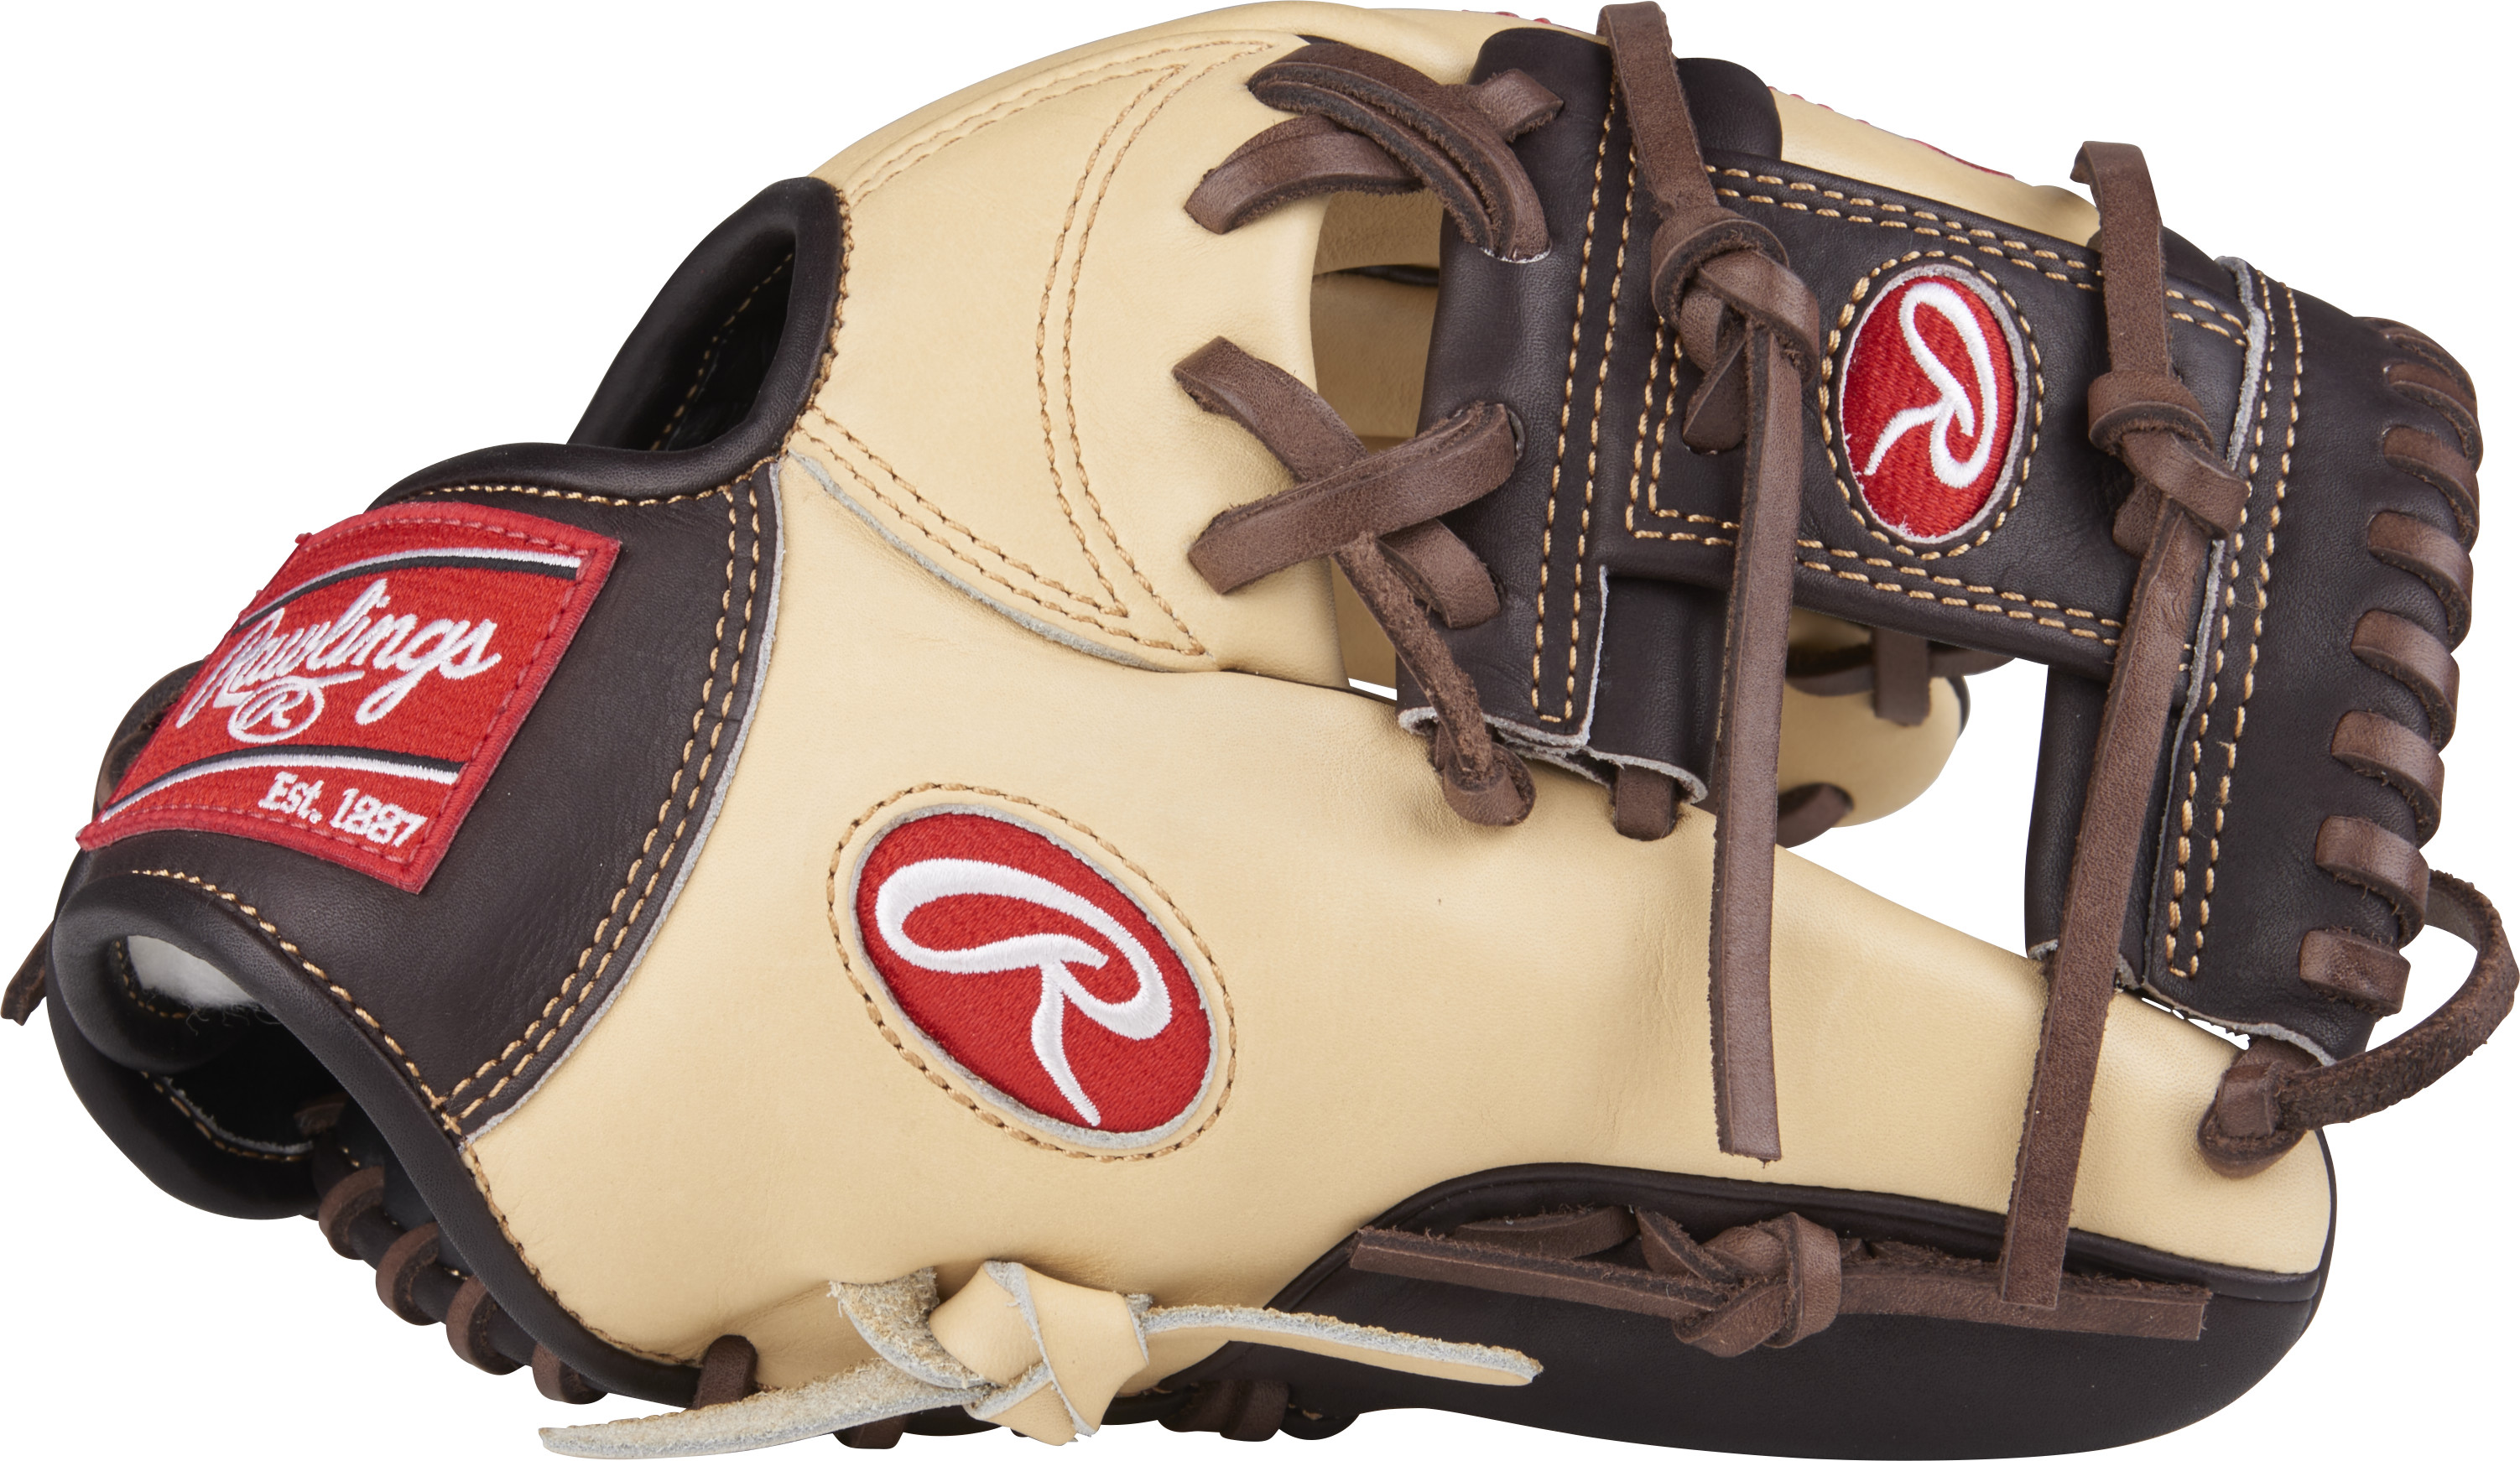 http://www.bestbatdeals.com/images/gloves/rawlings/PROSNP4-2CMO-3.jpg